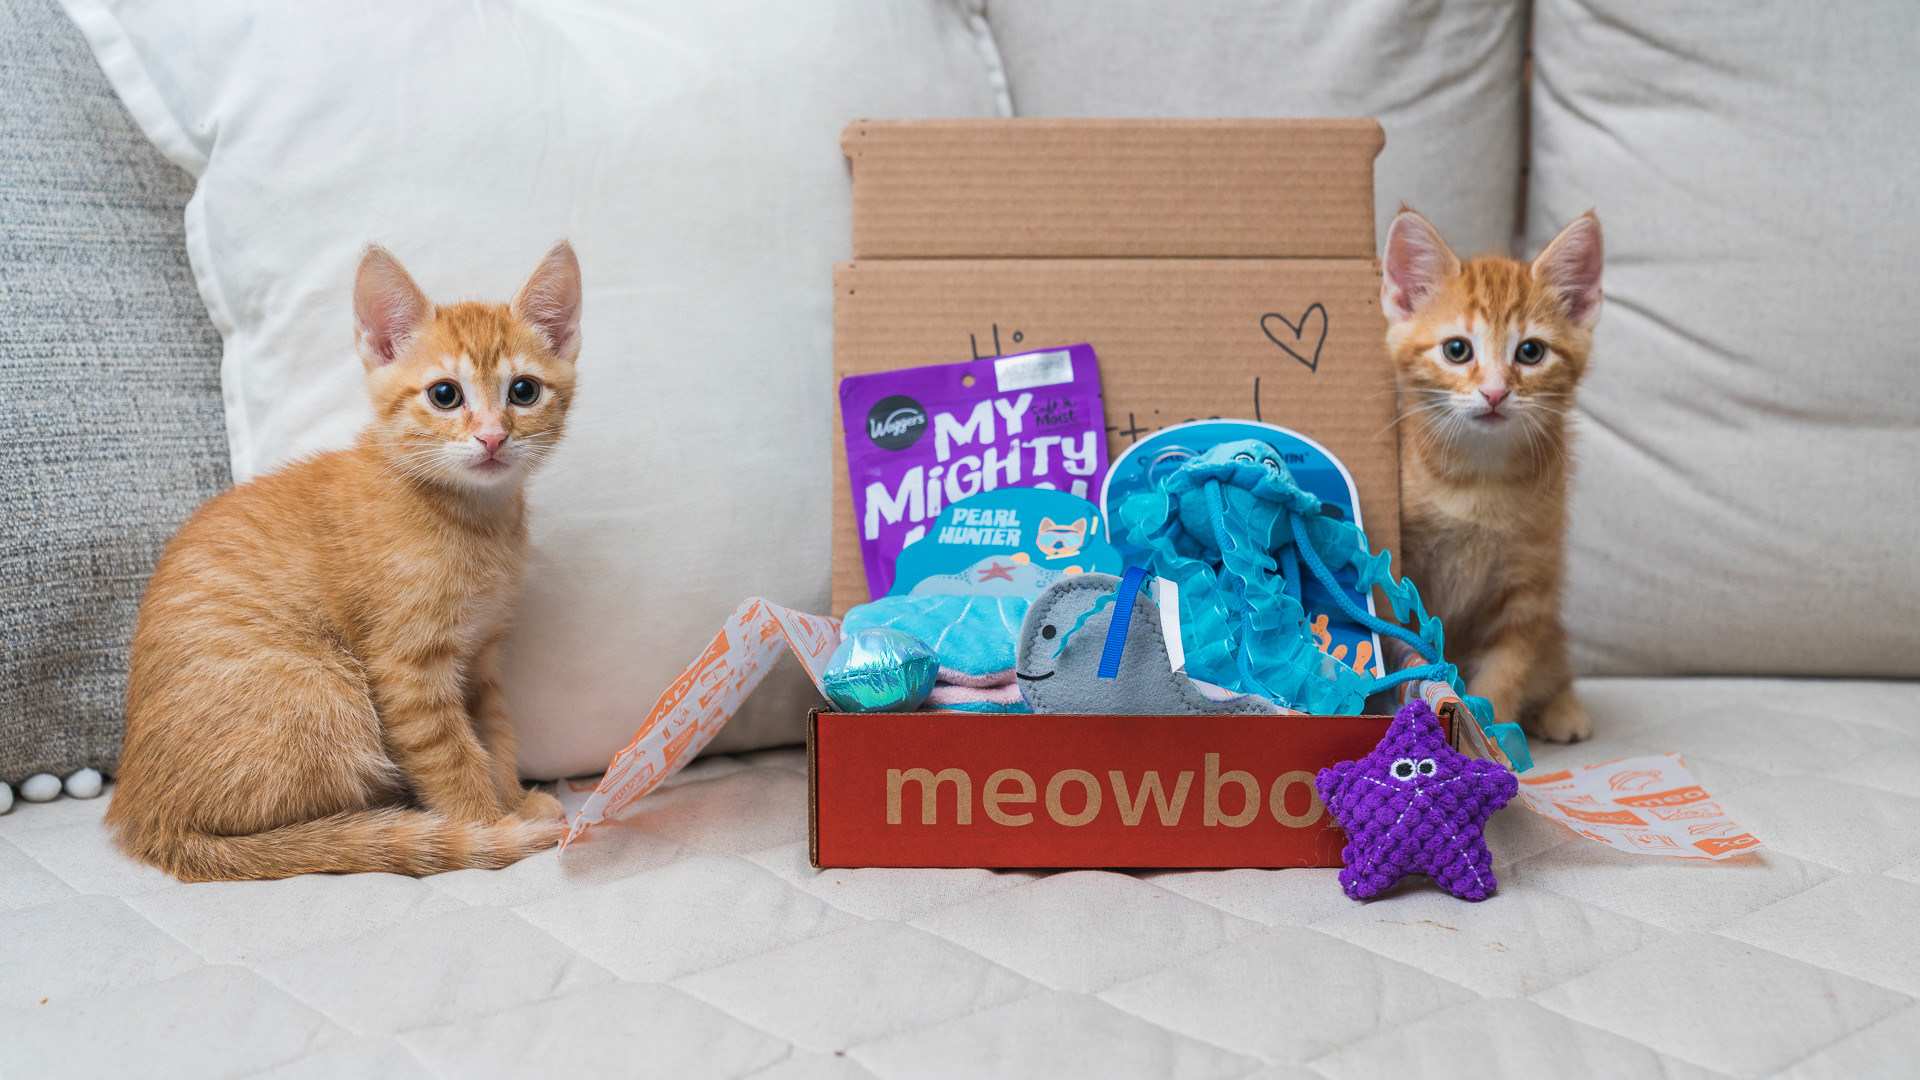 Meowbox A Monthly Cat Subscription Box Filled With Fun